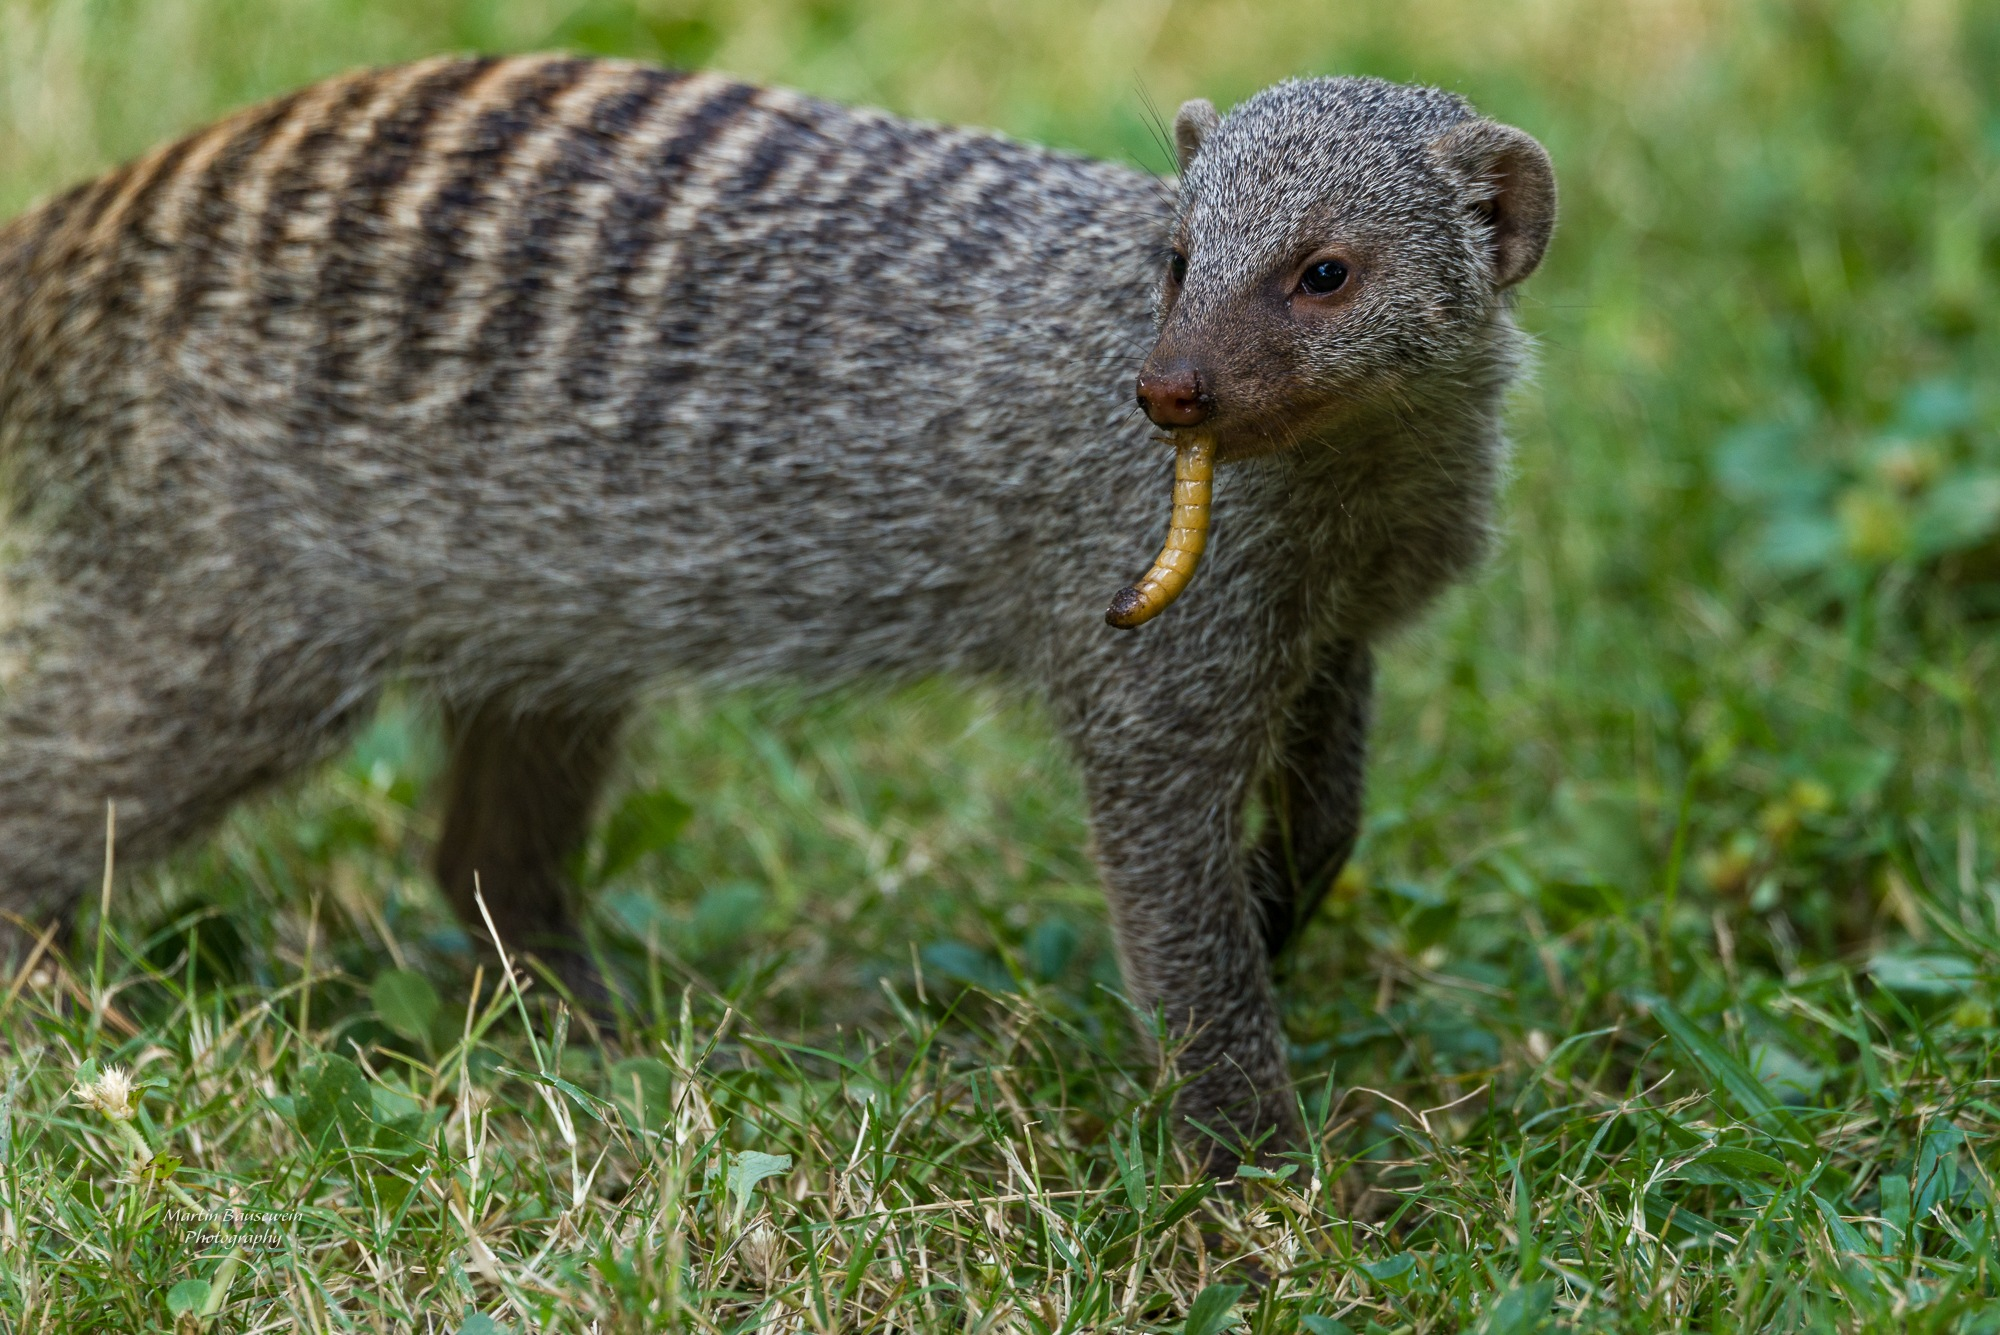 banded mongoose by Martin Bausewein